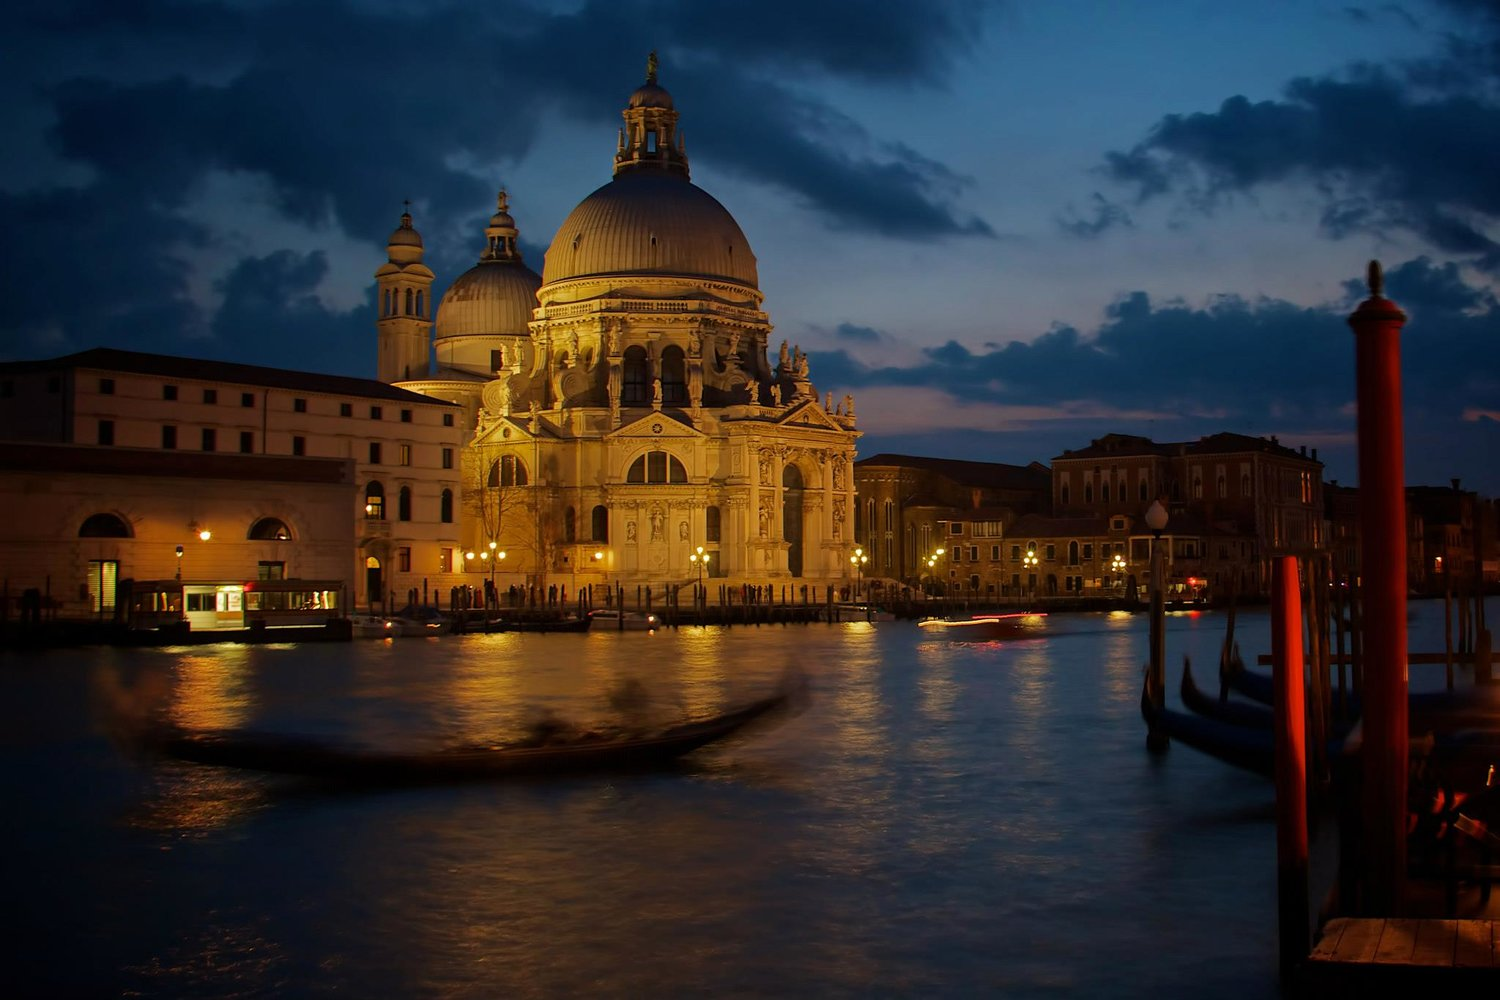 Venice at Night by Adrian McGarry shot on iPhone ©Adrian McGarry.